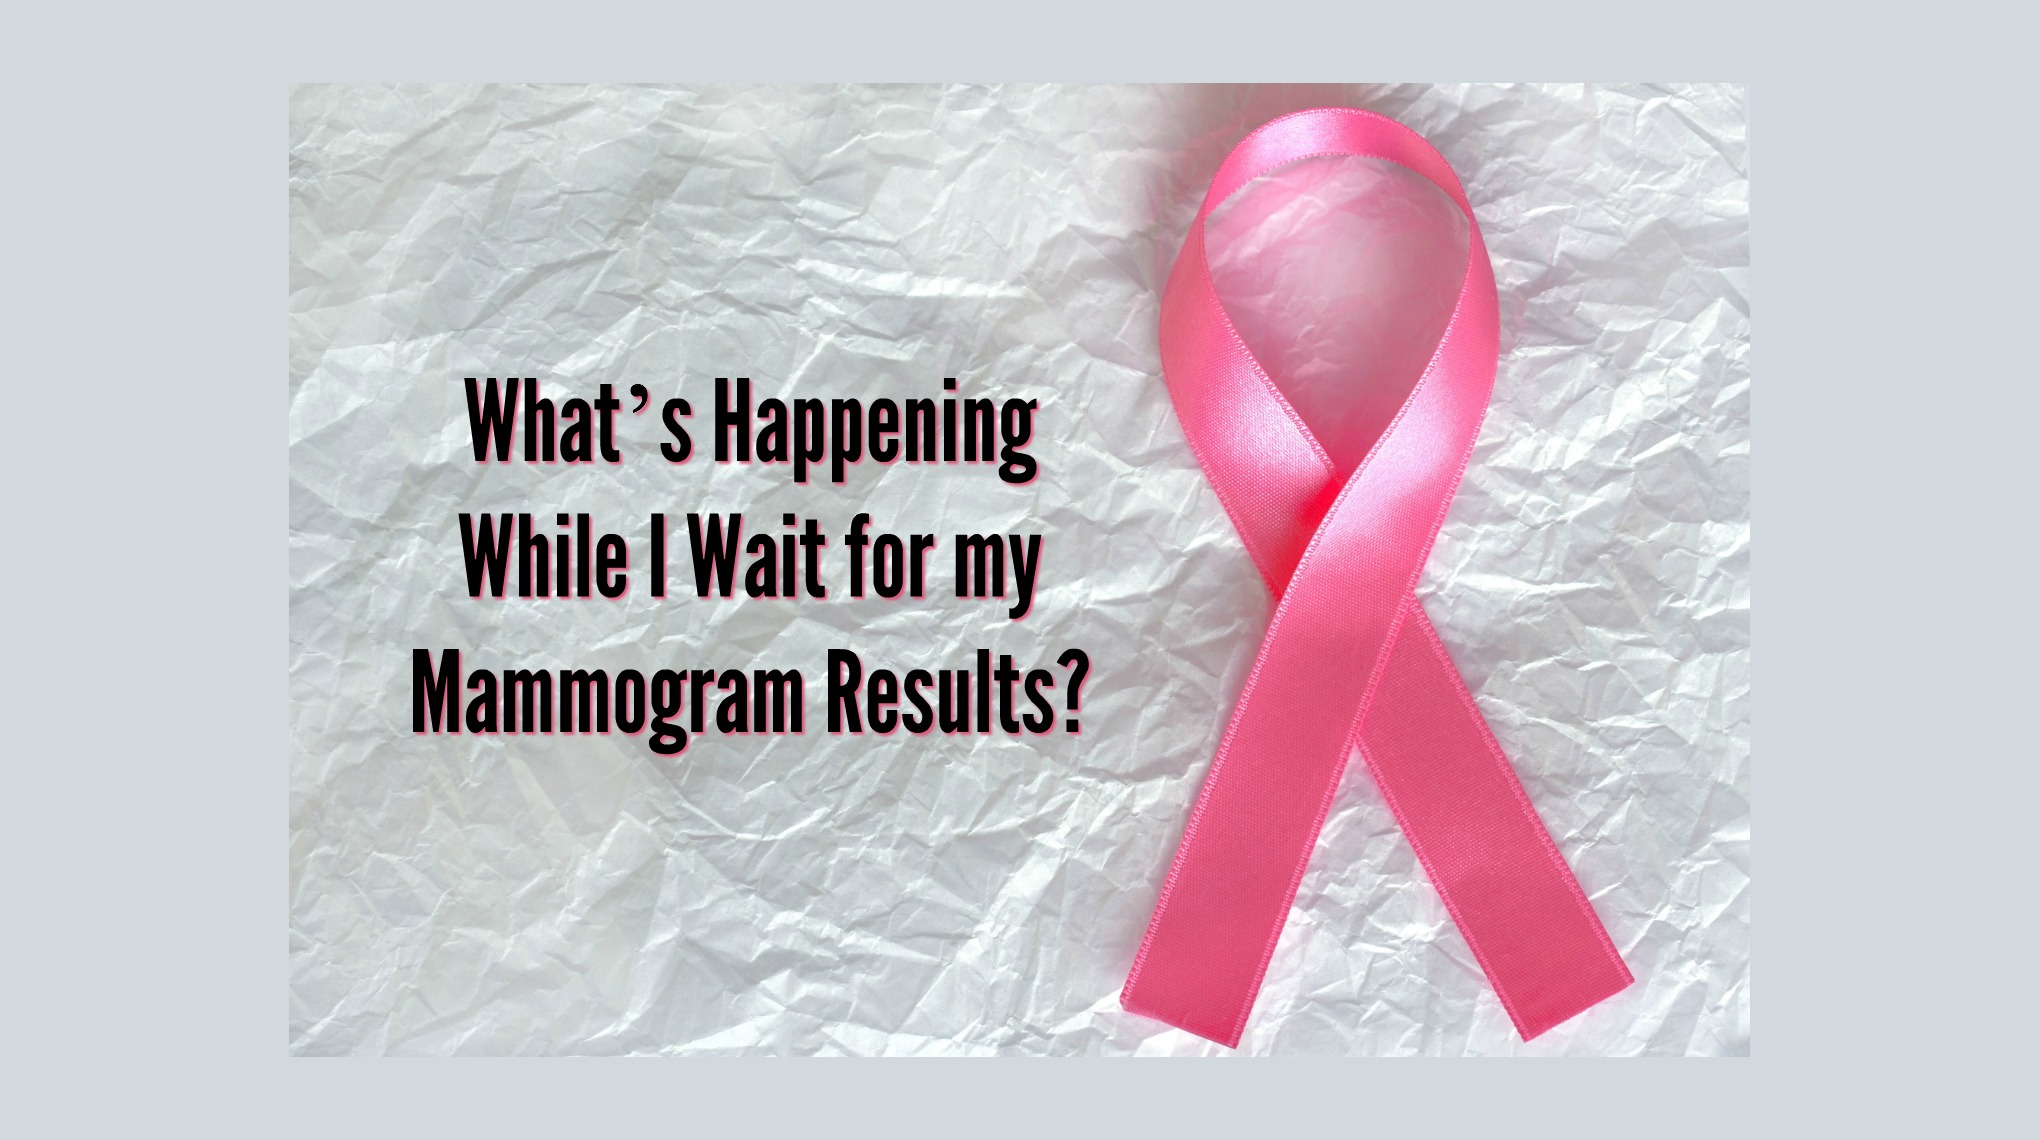 What's Happening While I Wait for my Mammogram Results